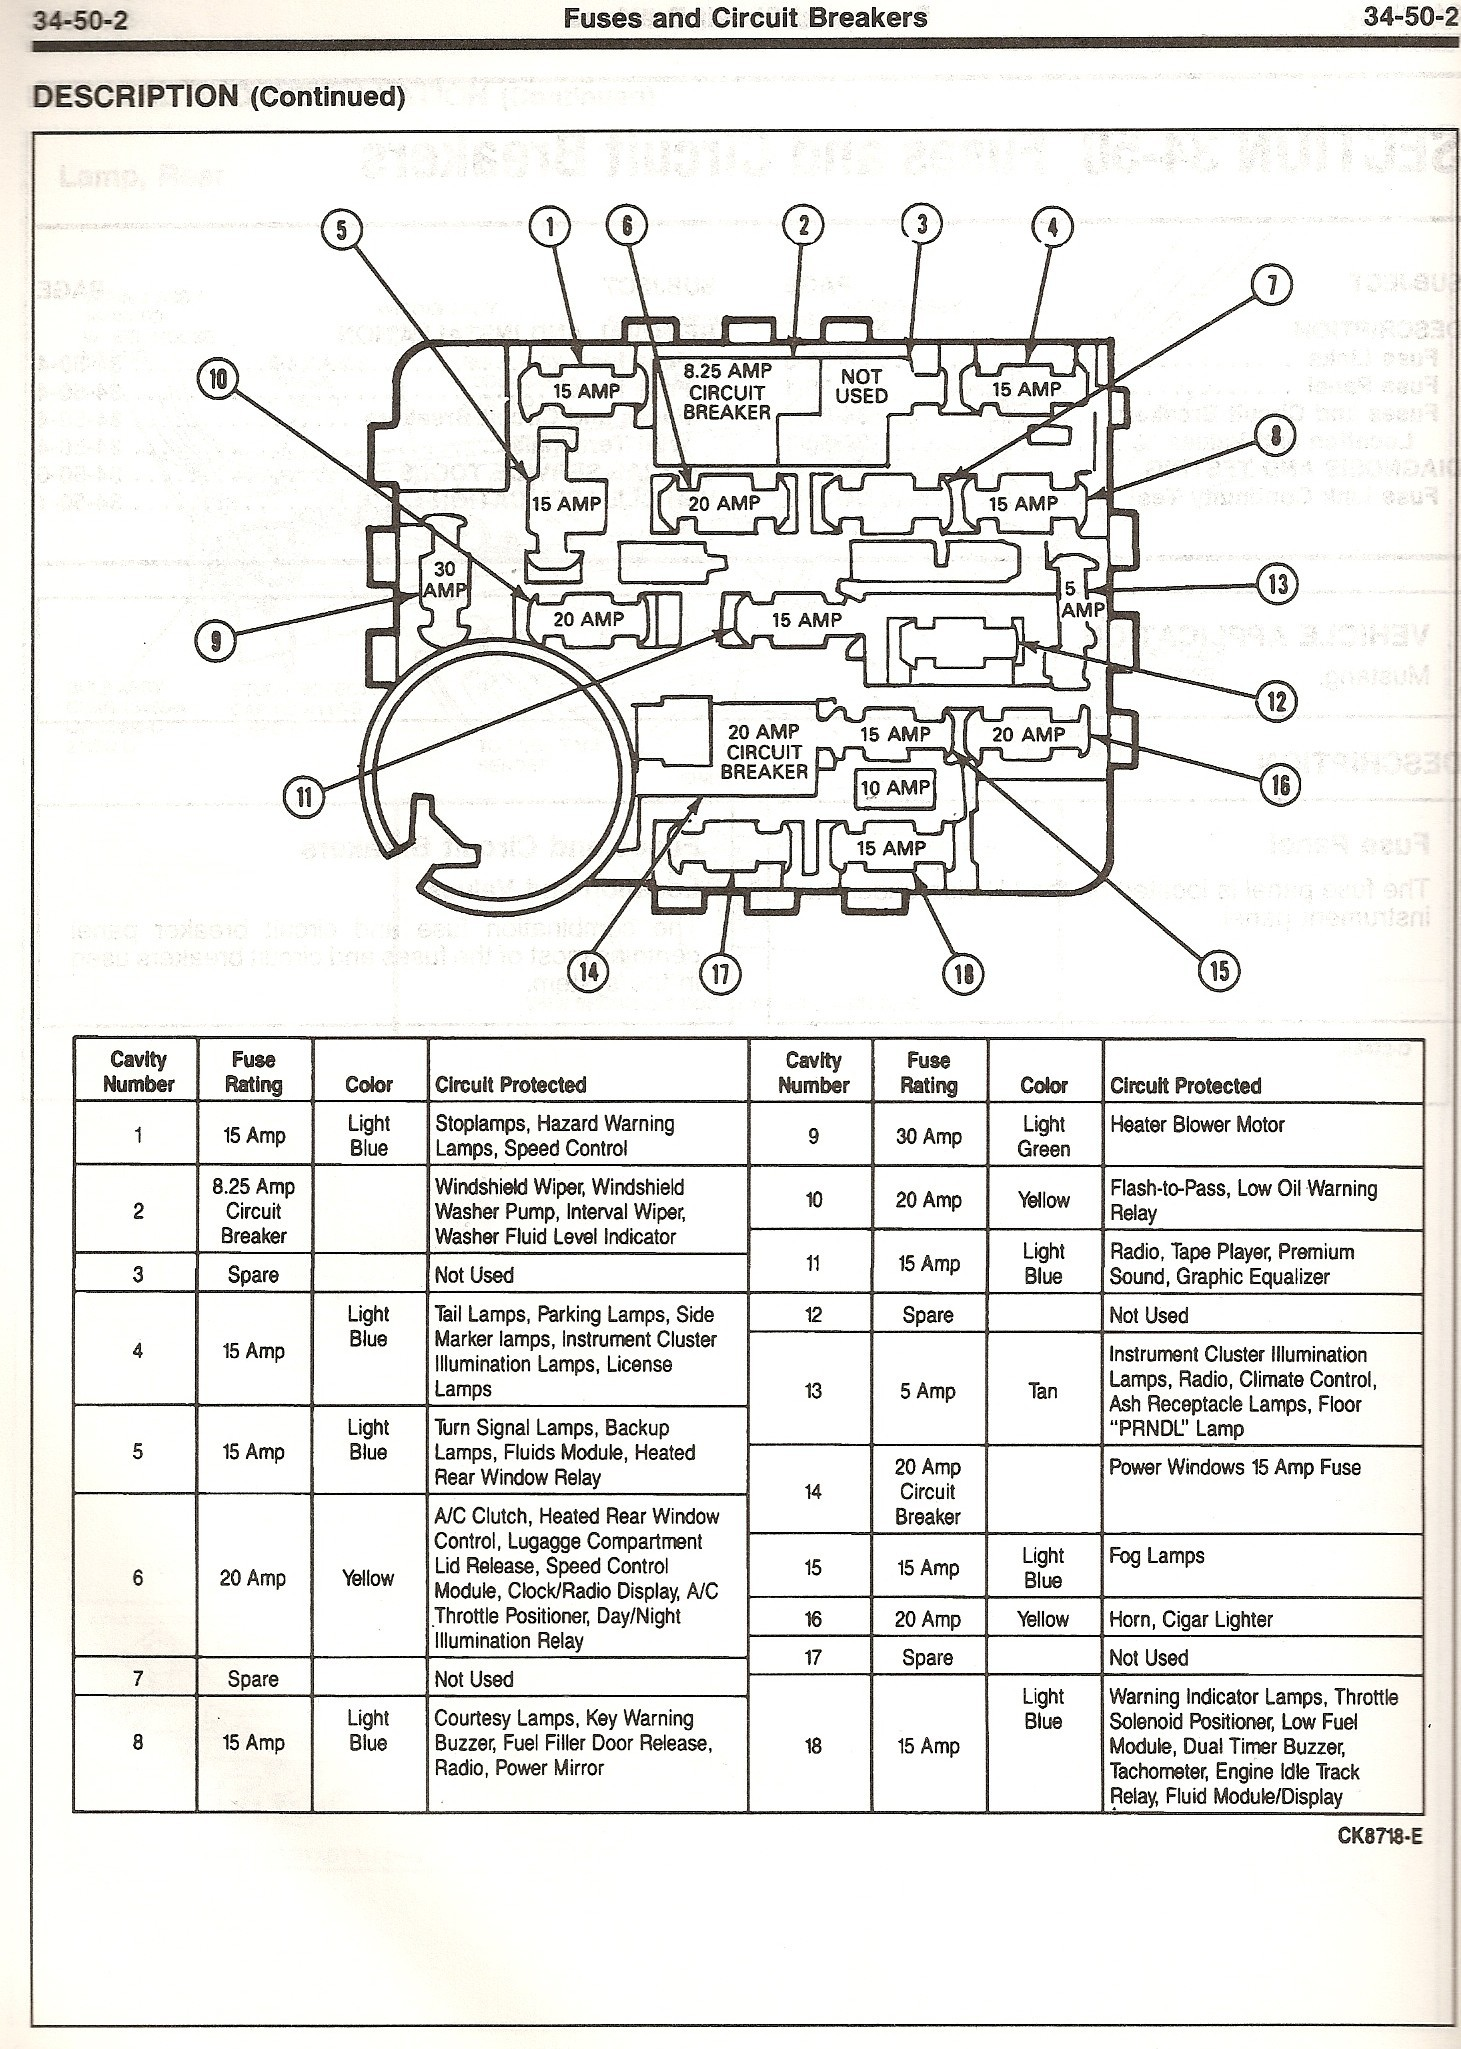 Engine Cooling System Diagram On Mustang Fuse Box